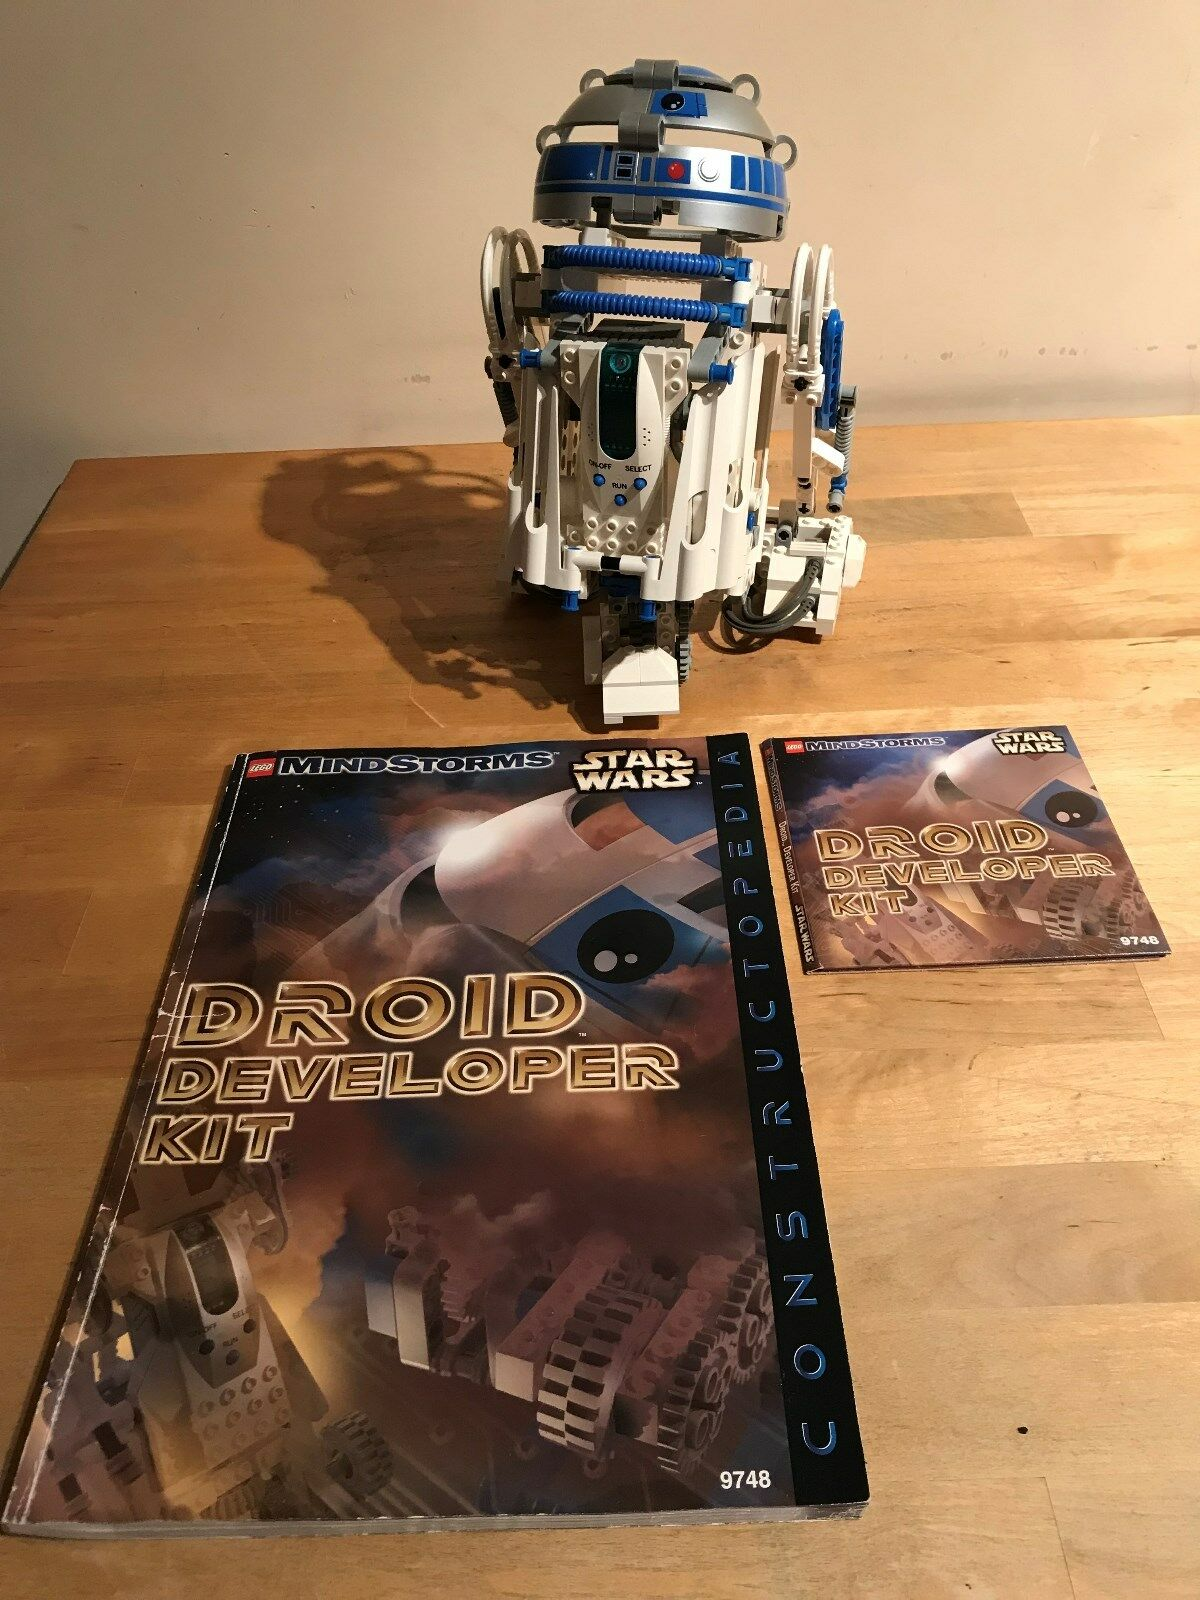 Lego Star Wars 9748 - Droid Developer Kit (Unboxed)